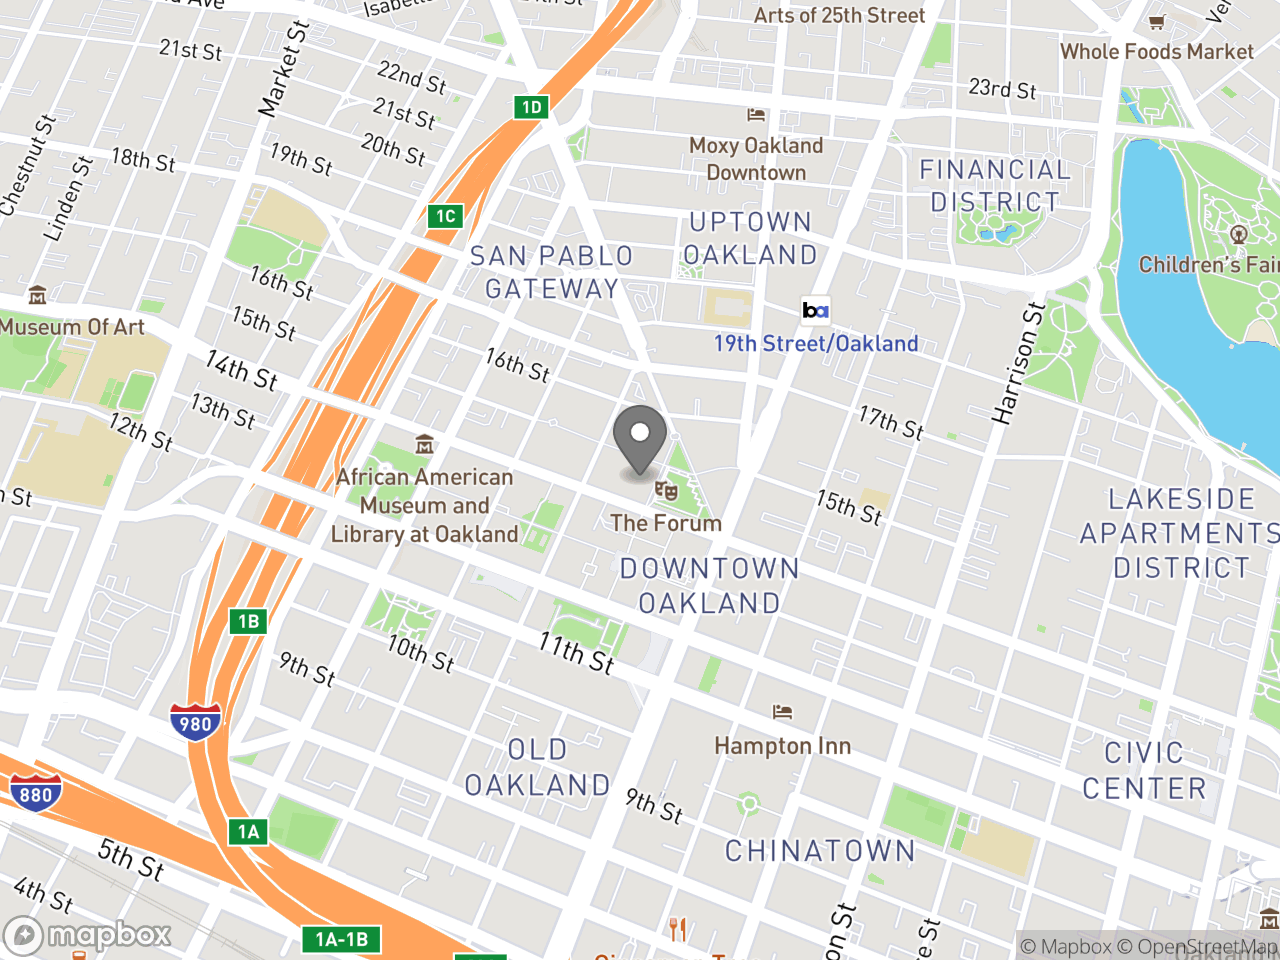 Map location for September 4, 2019 Planning Commission Meeting, located at 1 Frank H. Ogawa Plaza in Oakland, CA 94612